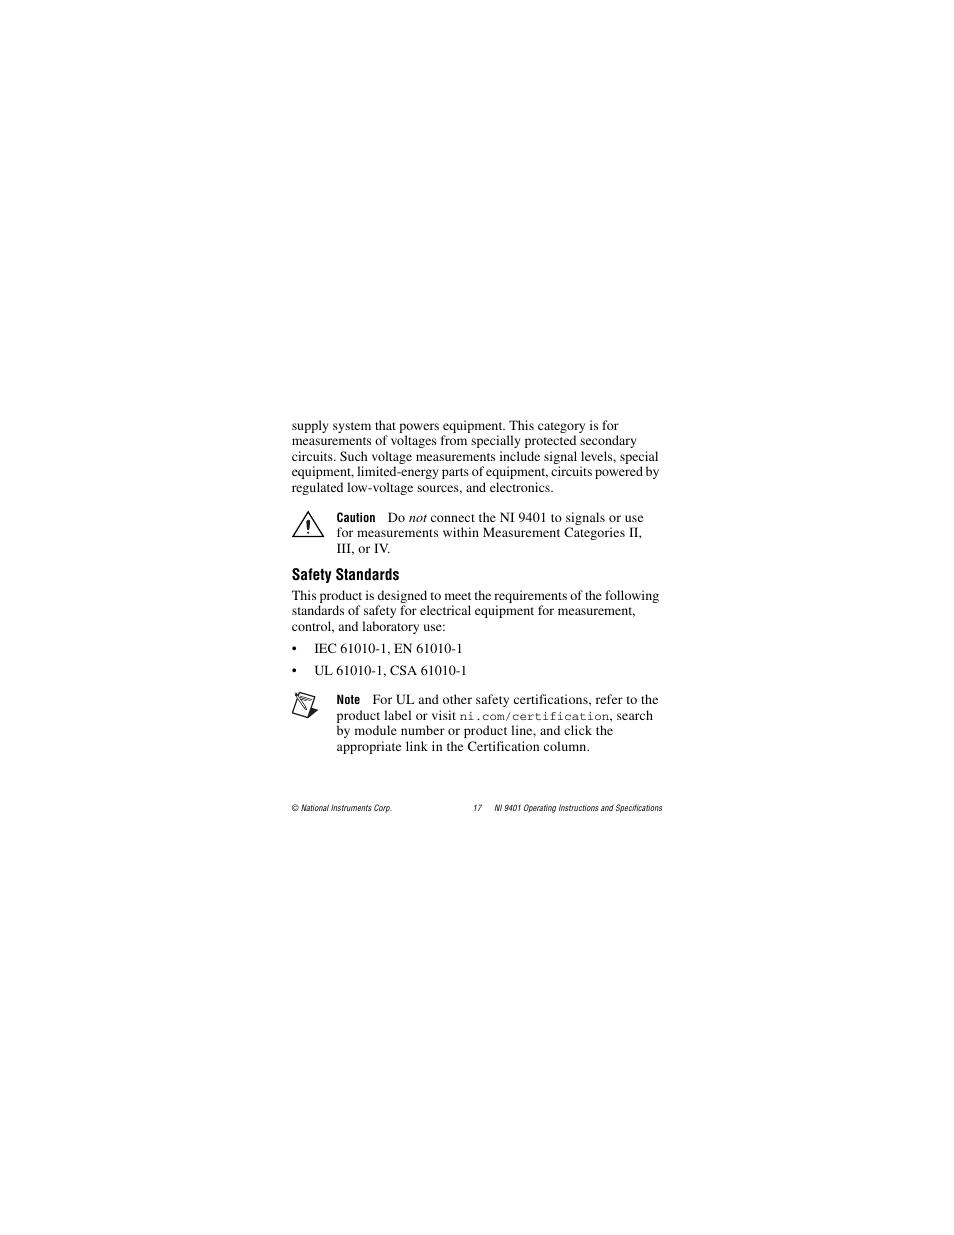 Safety standards | National Instruments NI 9401 User Manual